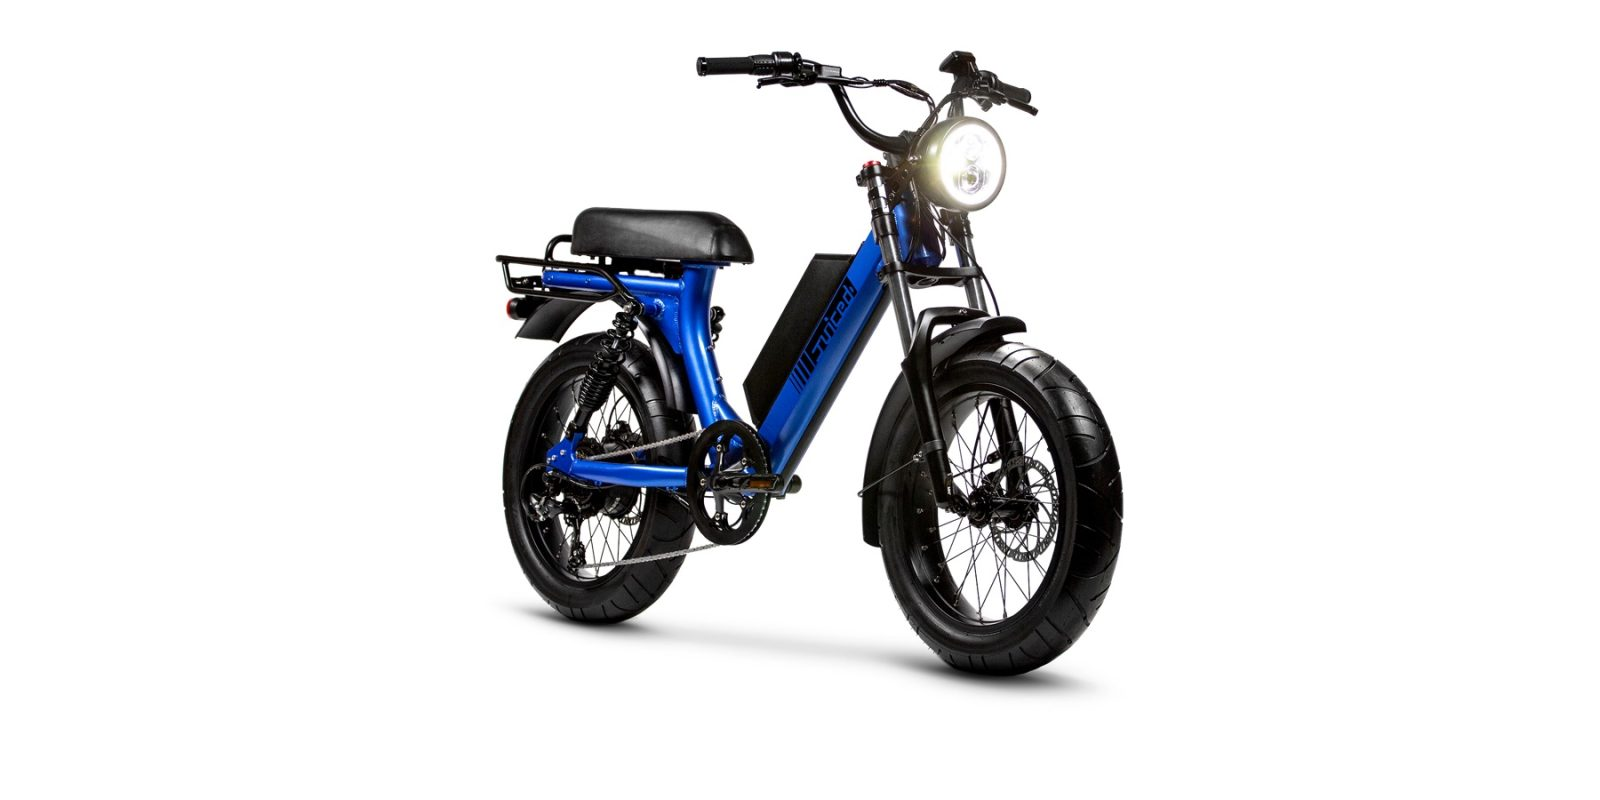 New electric moped unveiled by Juiced Bikes, offers 28 MPH and 75 mi range